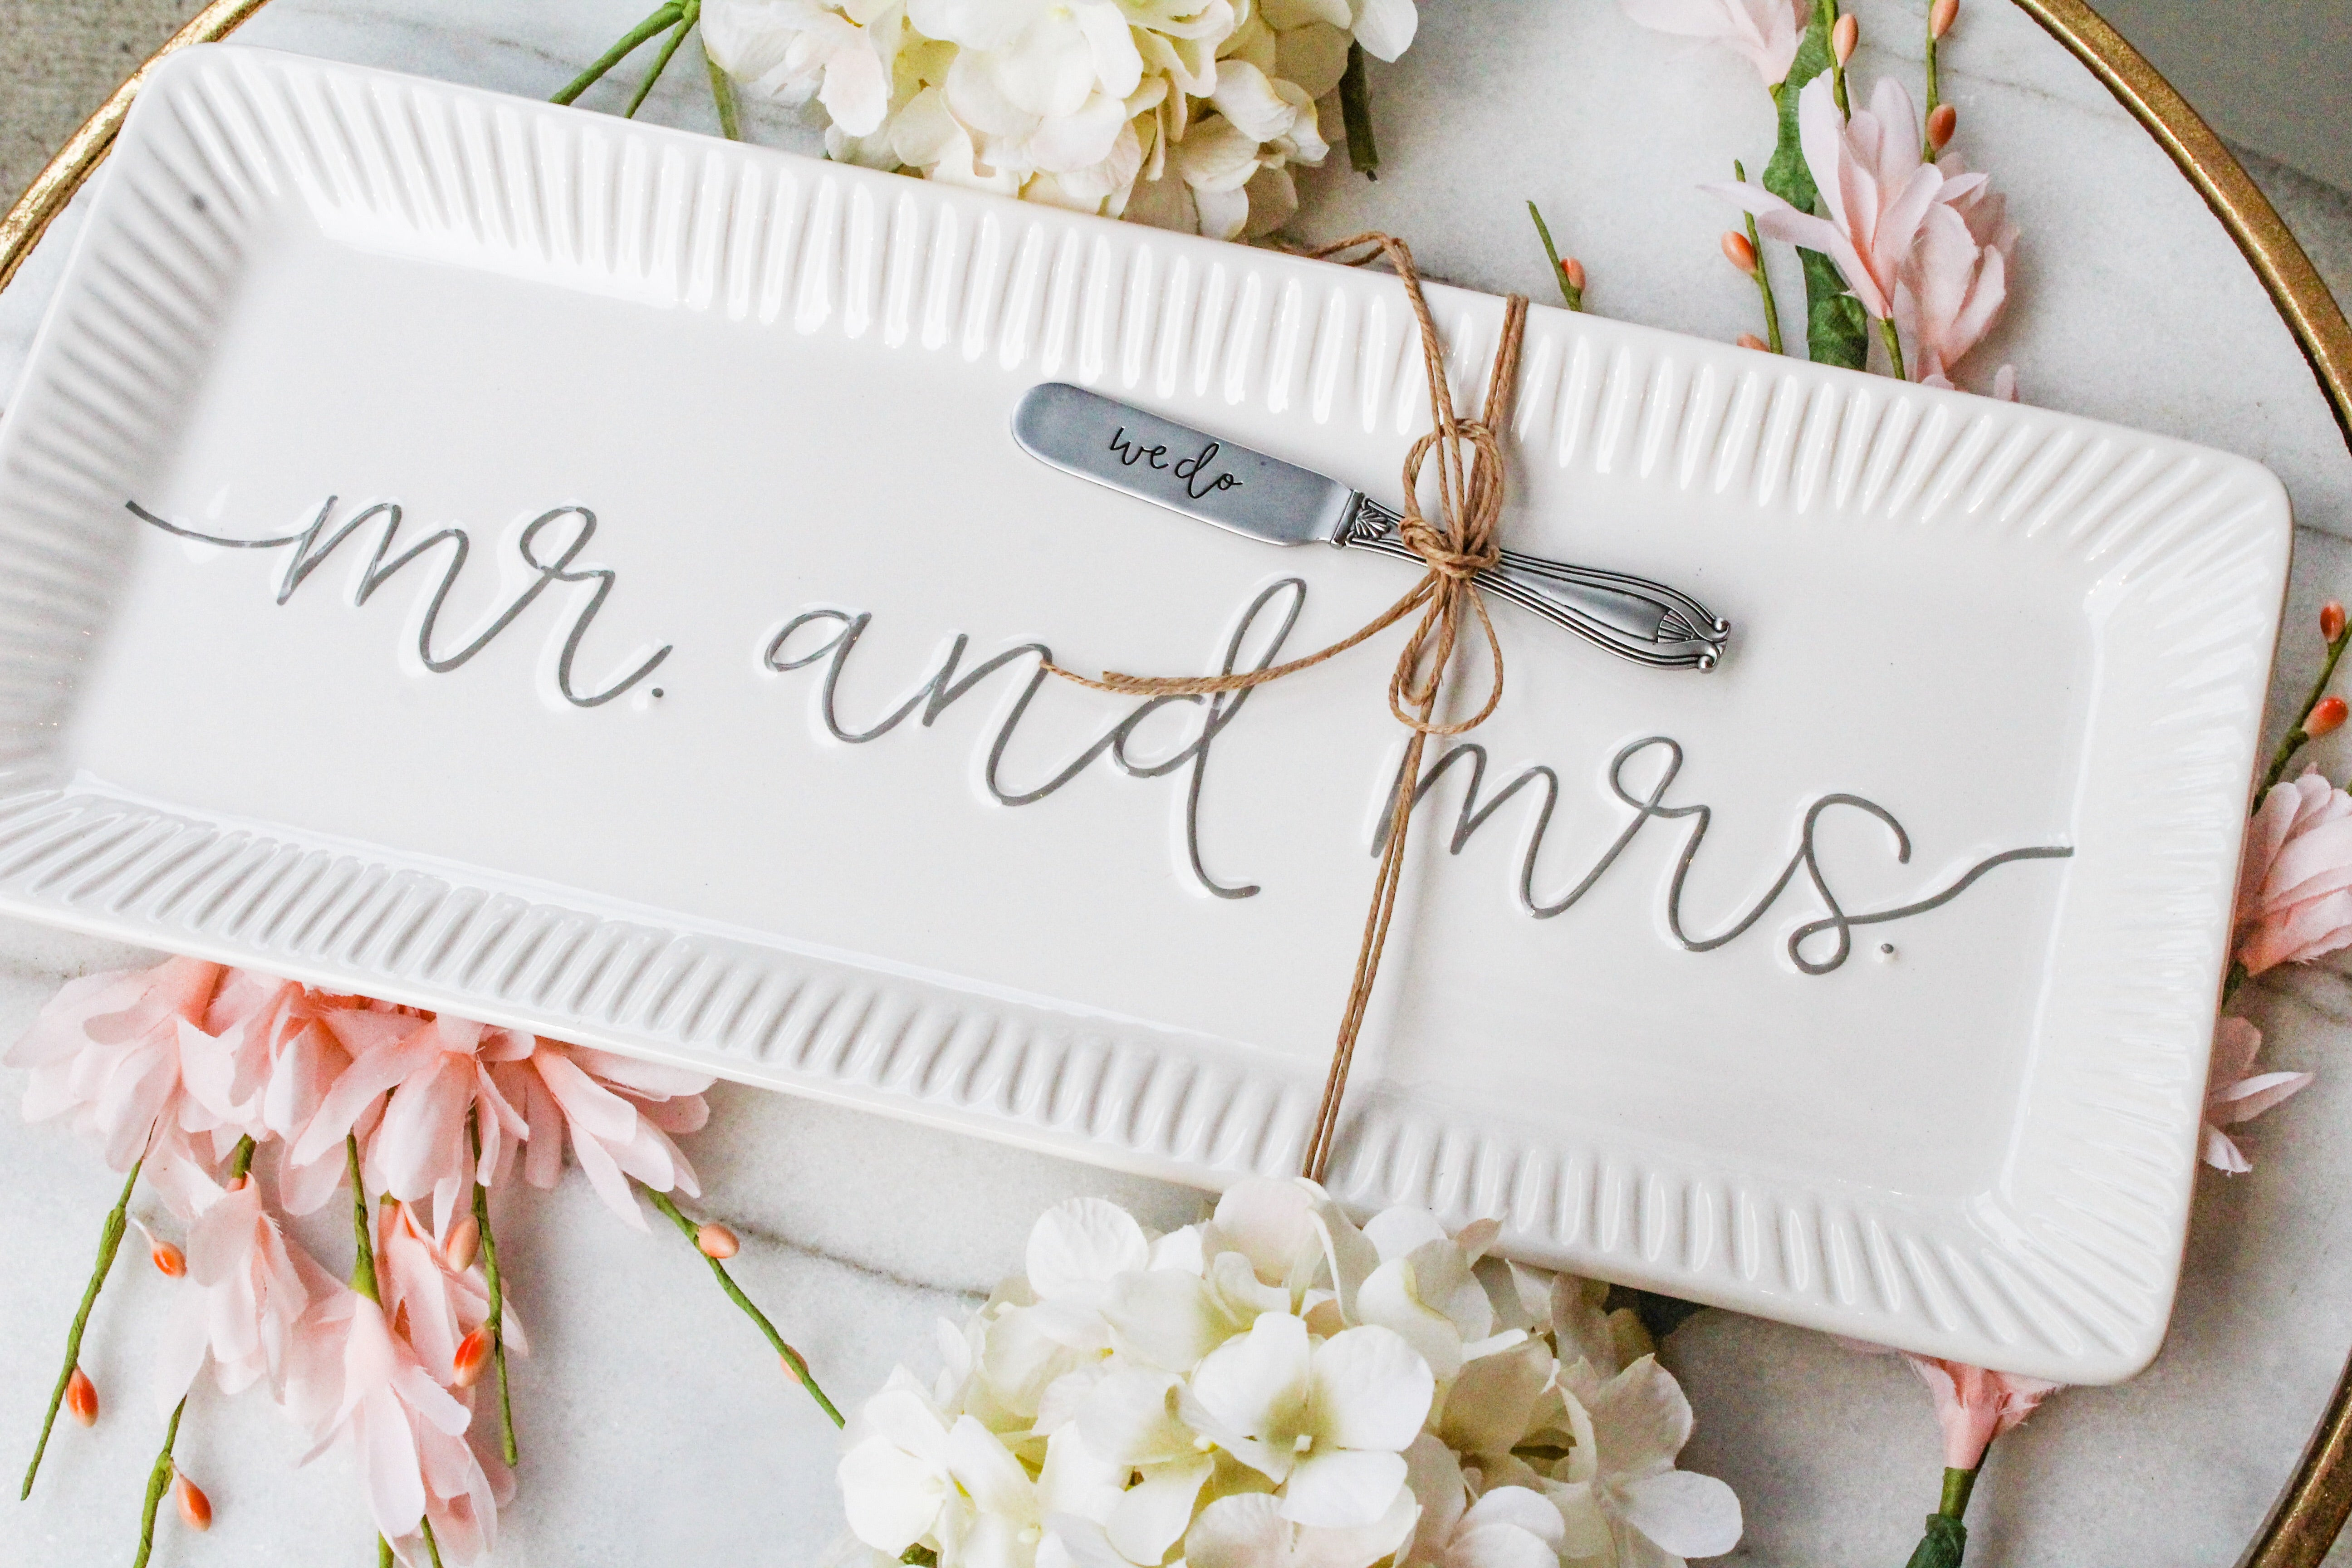 Mr. and Mrs. Hostess Plate Set